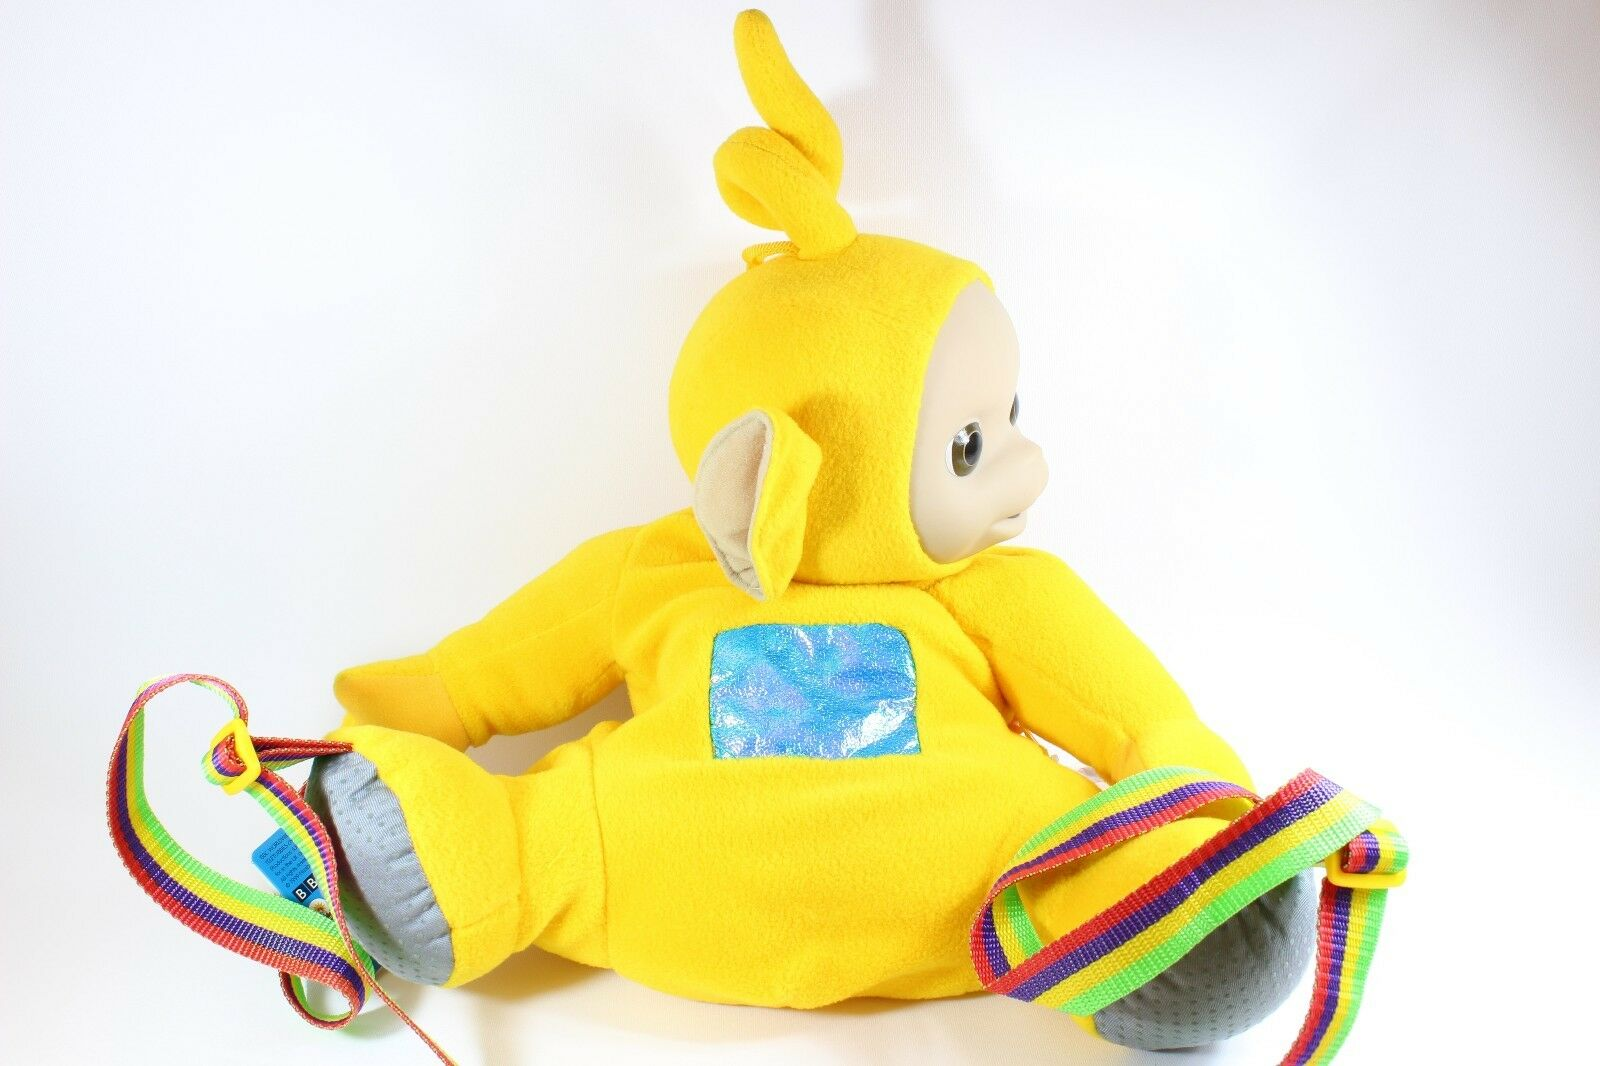 Teletubbies LaLa Gelb Gelb Gelb Laa Laa Telly Tubby Large Backpack Bag Retro Playskool 2e2889